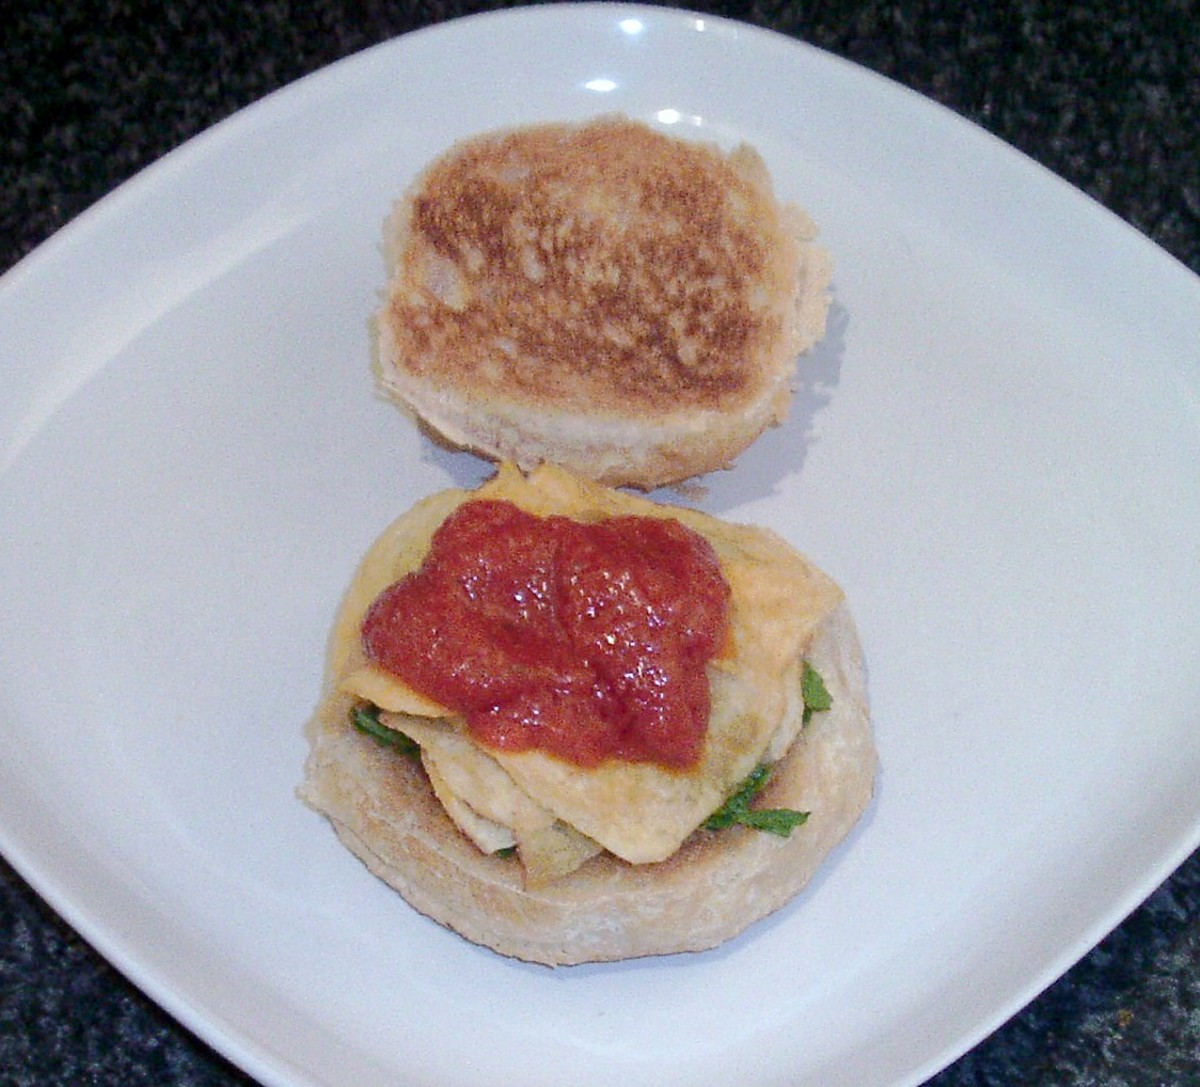 Cheese and onion crisps and rocket on a toasted roll are topped with homemade tomato sauce